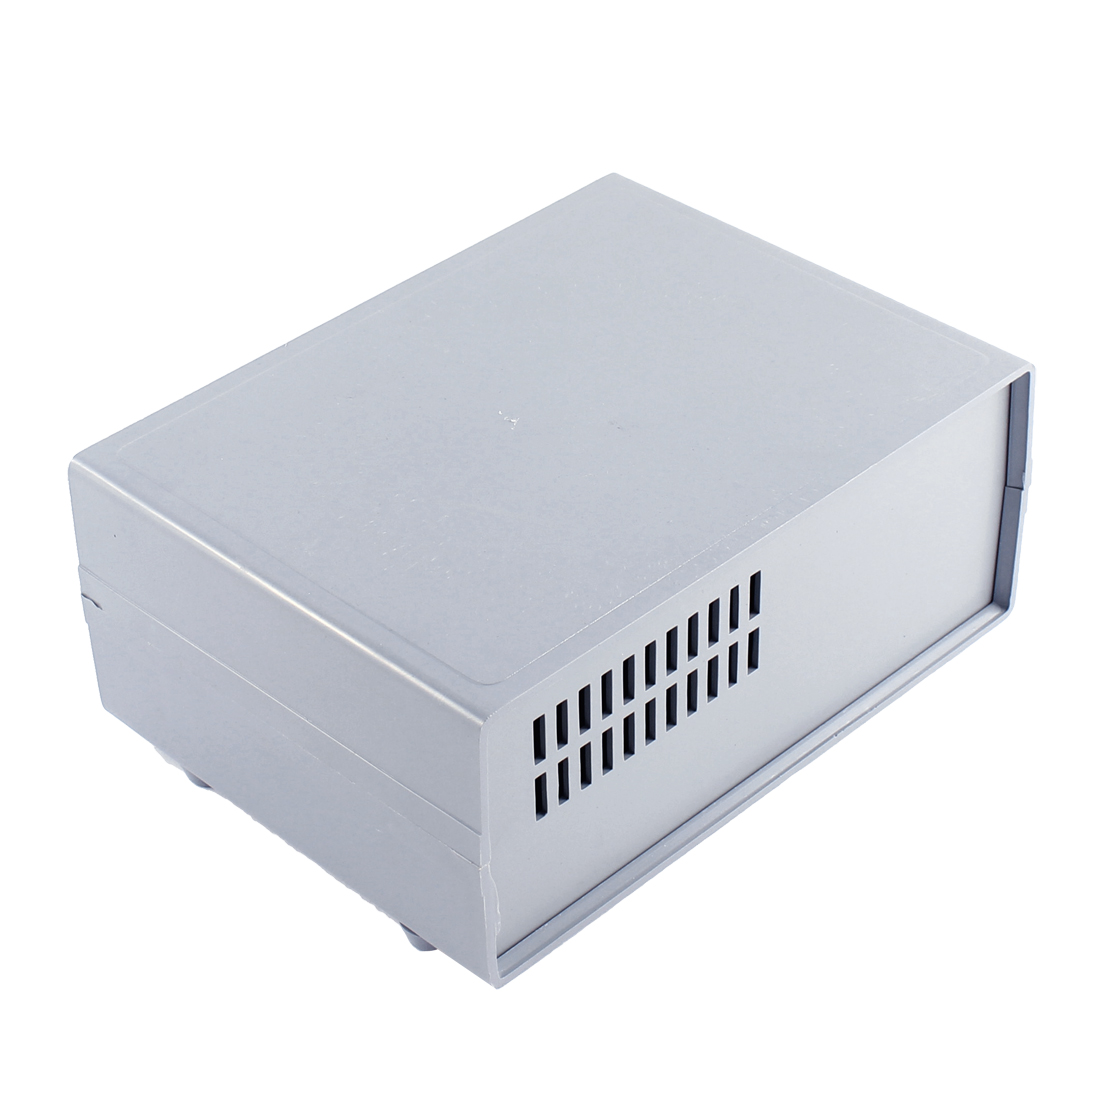 Plastic Enclosure Electronics Project Case Junction Shell Box 160 x 120 x 68mm